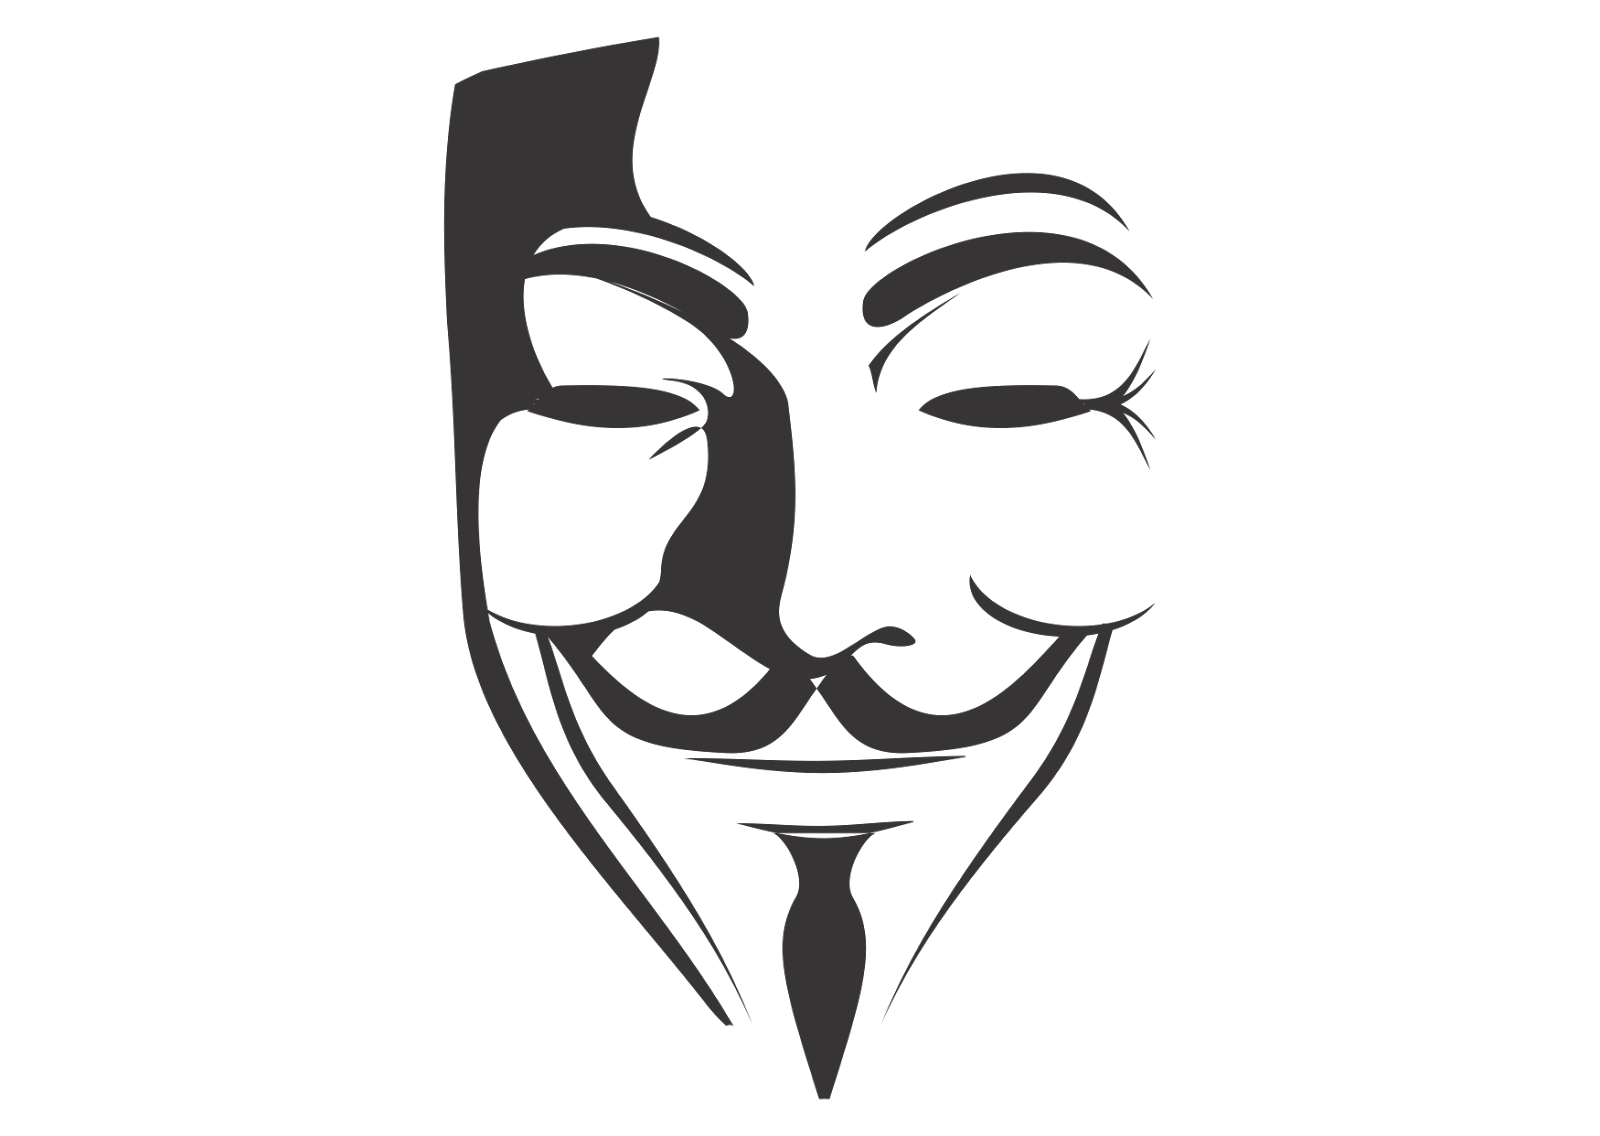 1600x1136 Pin By Karadere On V For Vandetta